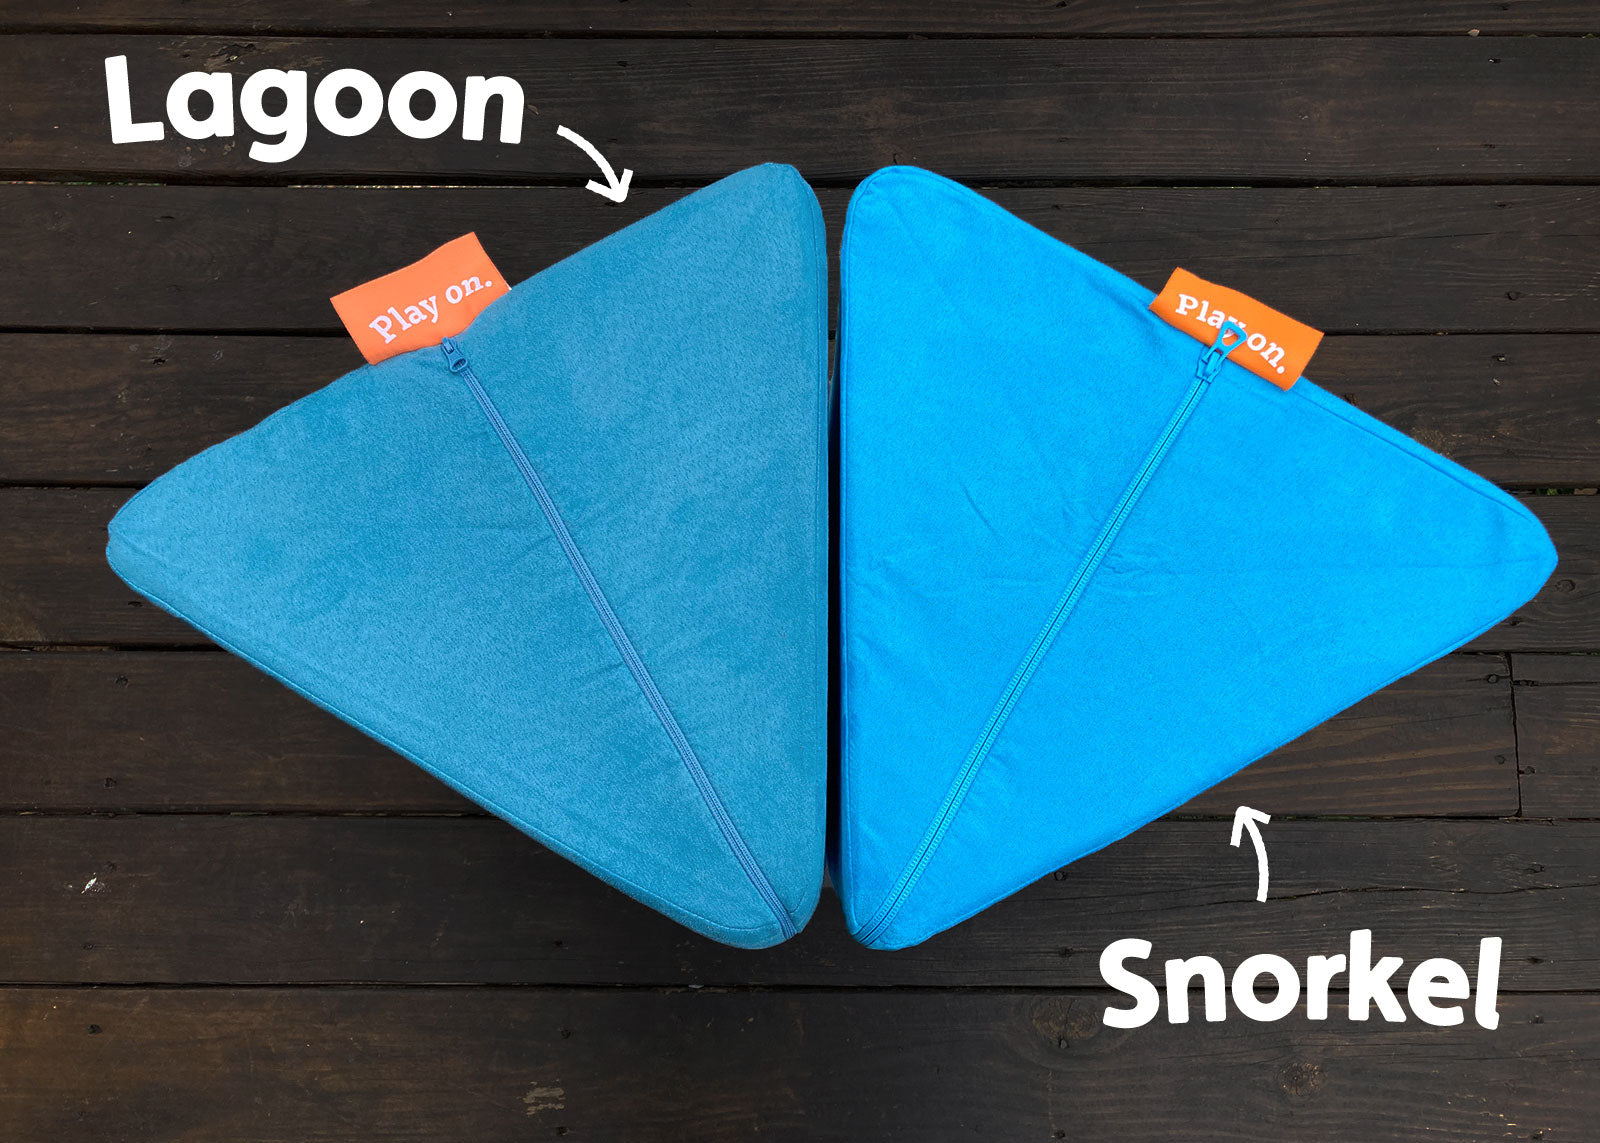 Comparison of Nugget colors: Laggon —a dusty, desaturated, warm blue; and Snorkel — a bright, popping, aquamarine